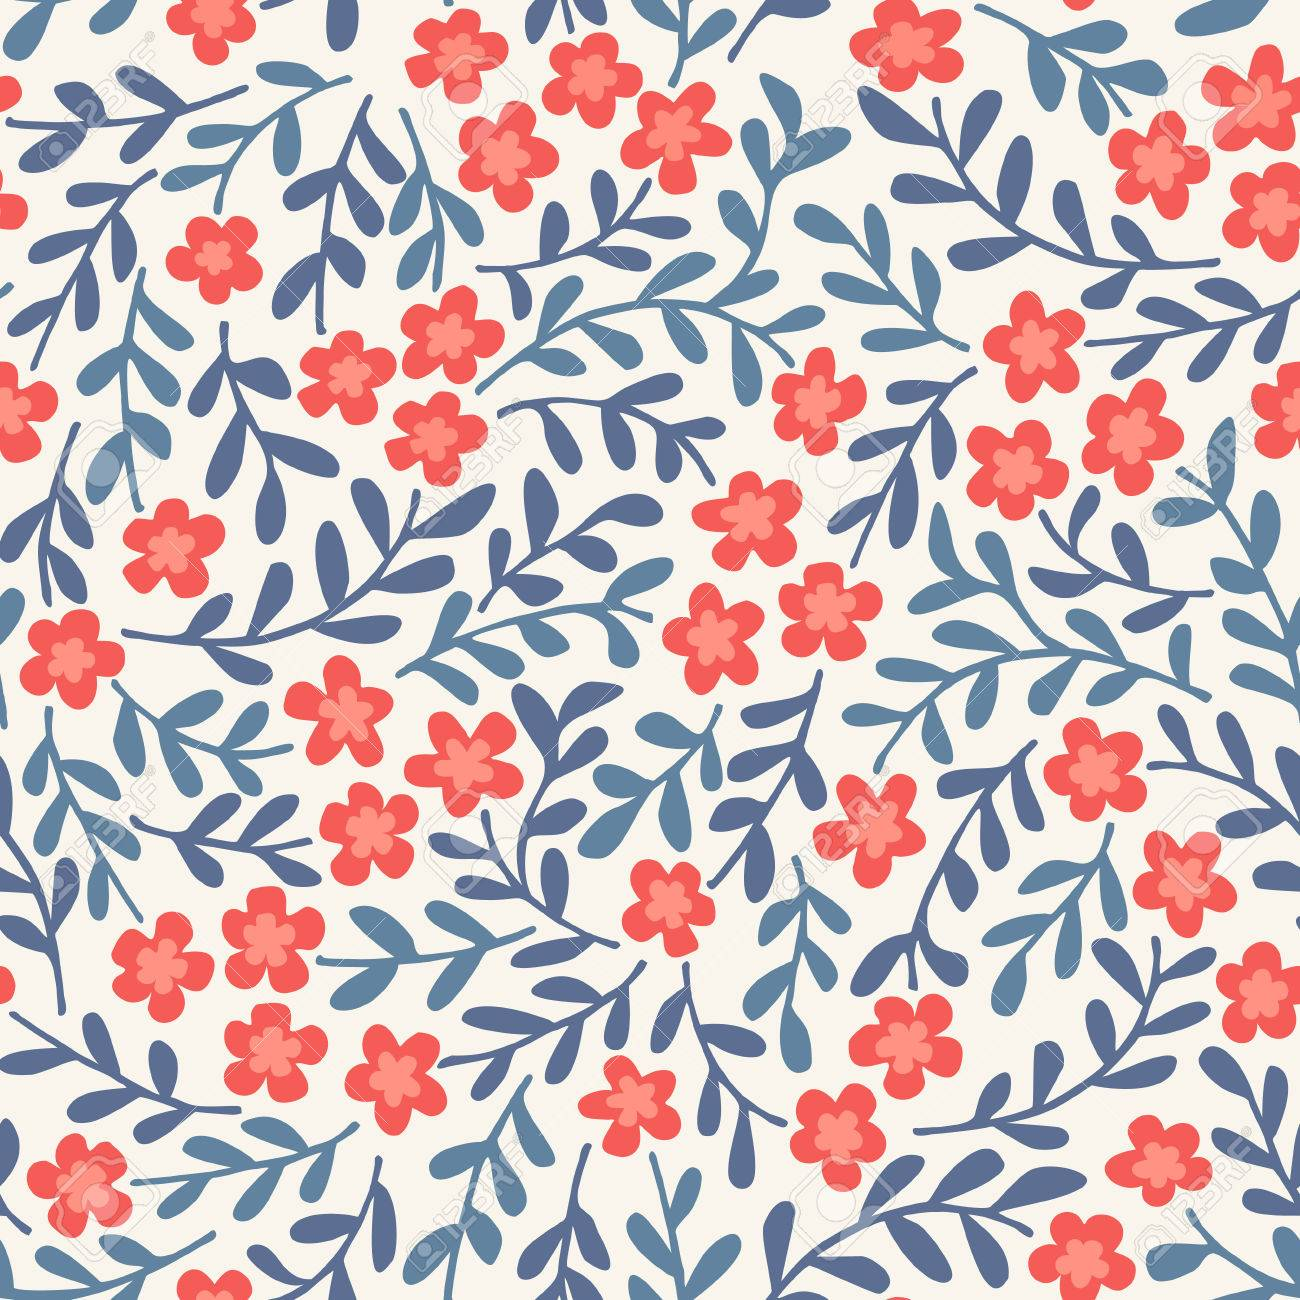 Simple seamless vector pattern with flowers Stock Vector - 33020130